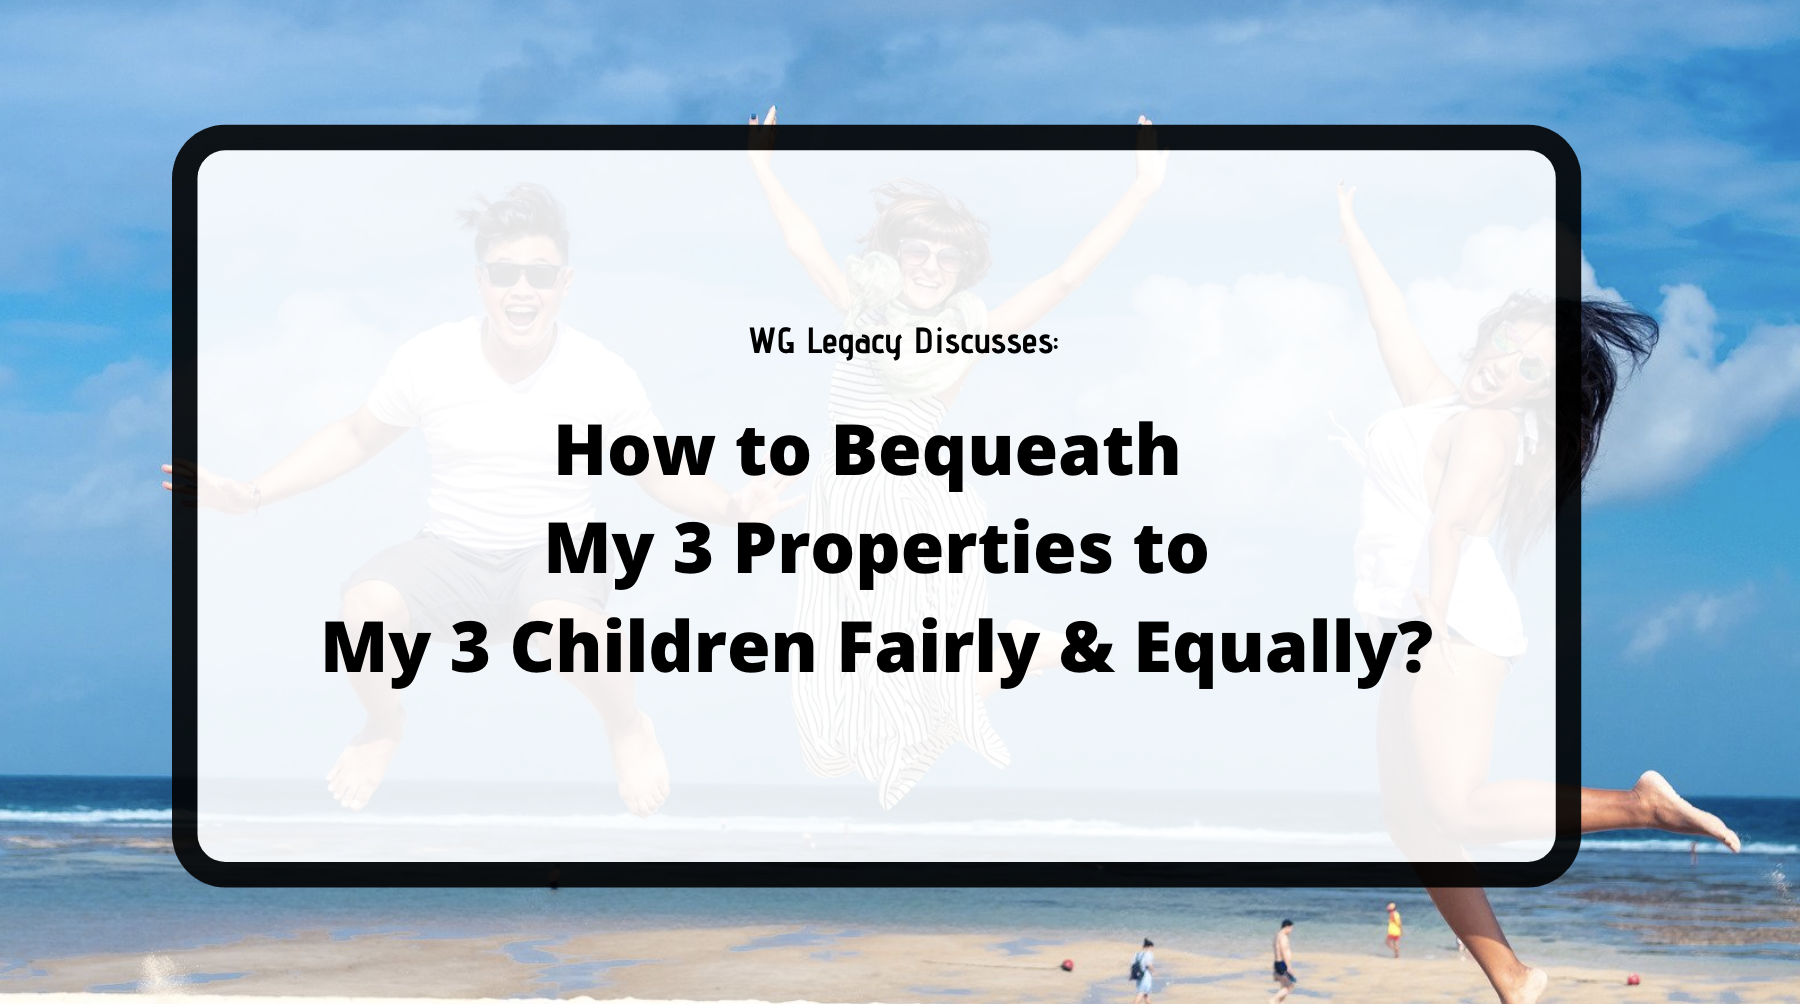 How to Bequeath My 3 Properties to My 3 Children Fairly and Equally?